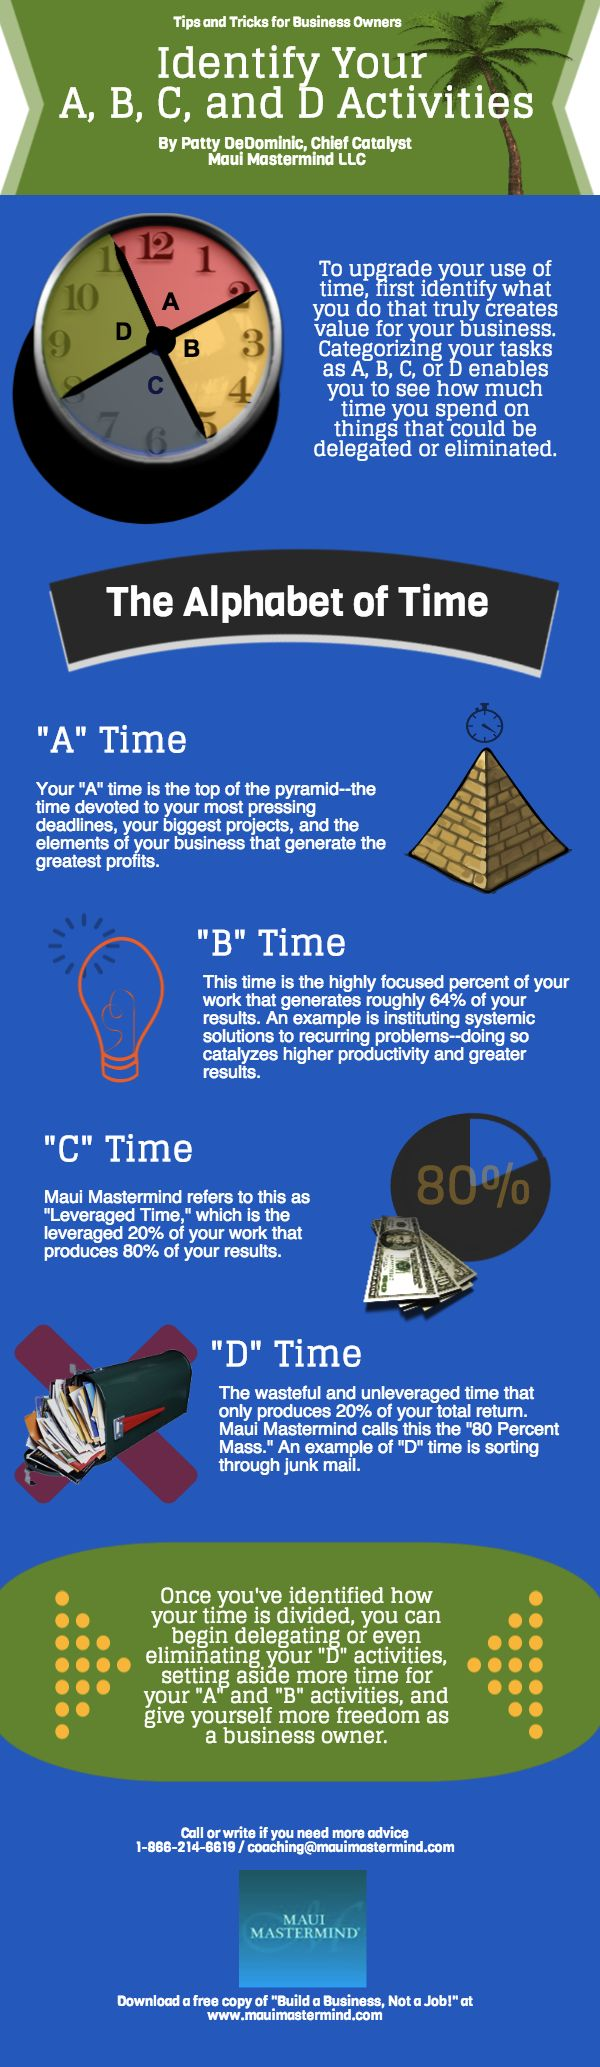 """Download a FREE copy of """"Build a Business, Not a Job!"""" at www.mauimastermind.com #mauimastermind #business #infographic #scale #grow #rich #wealth #tips #tricks #format #package #system #alphabet #time #management #activity"""